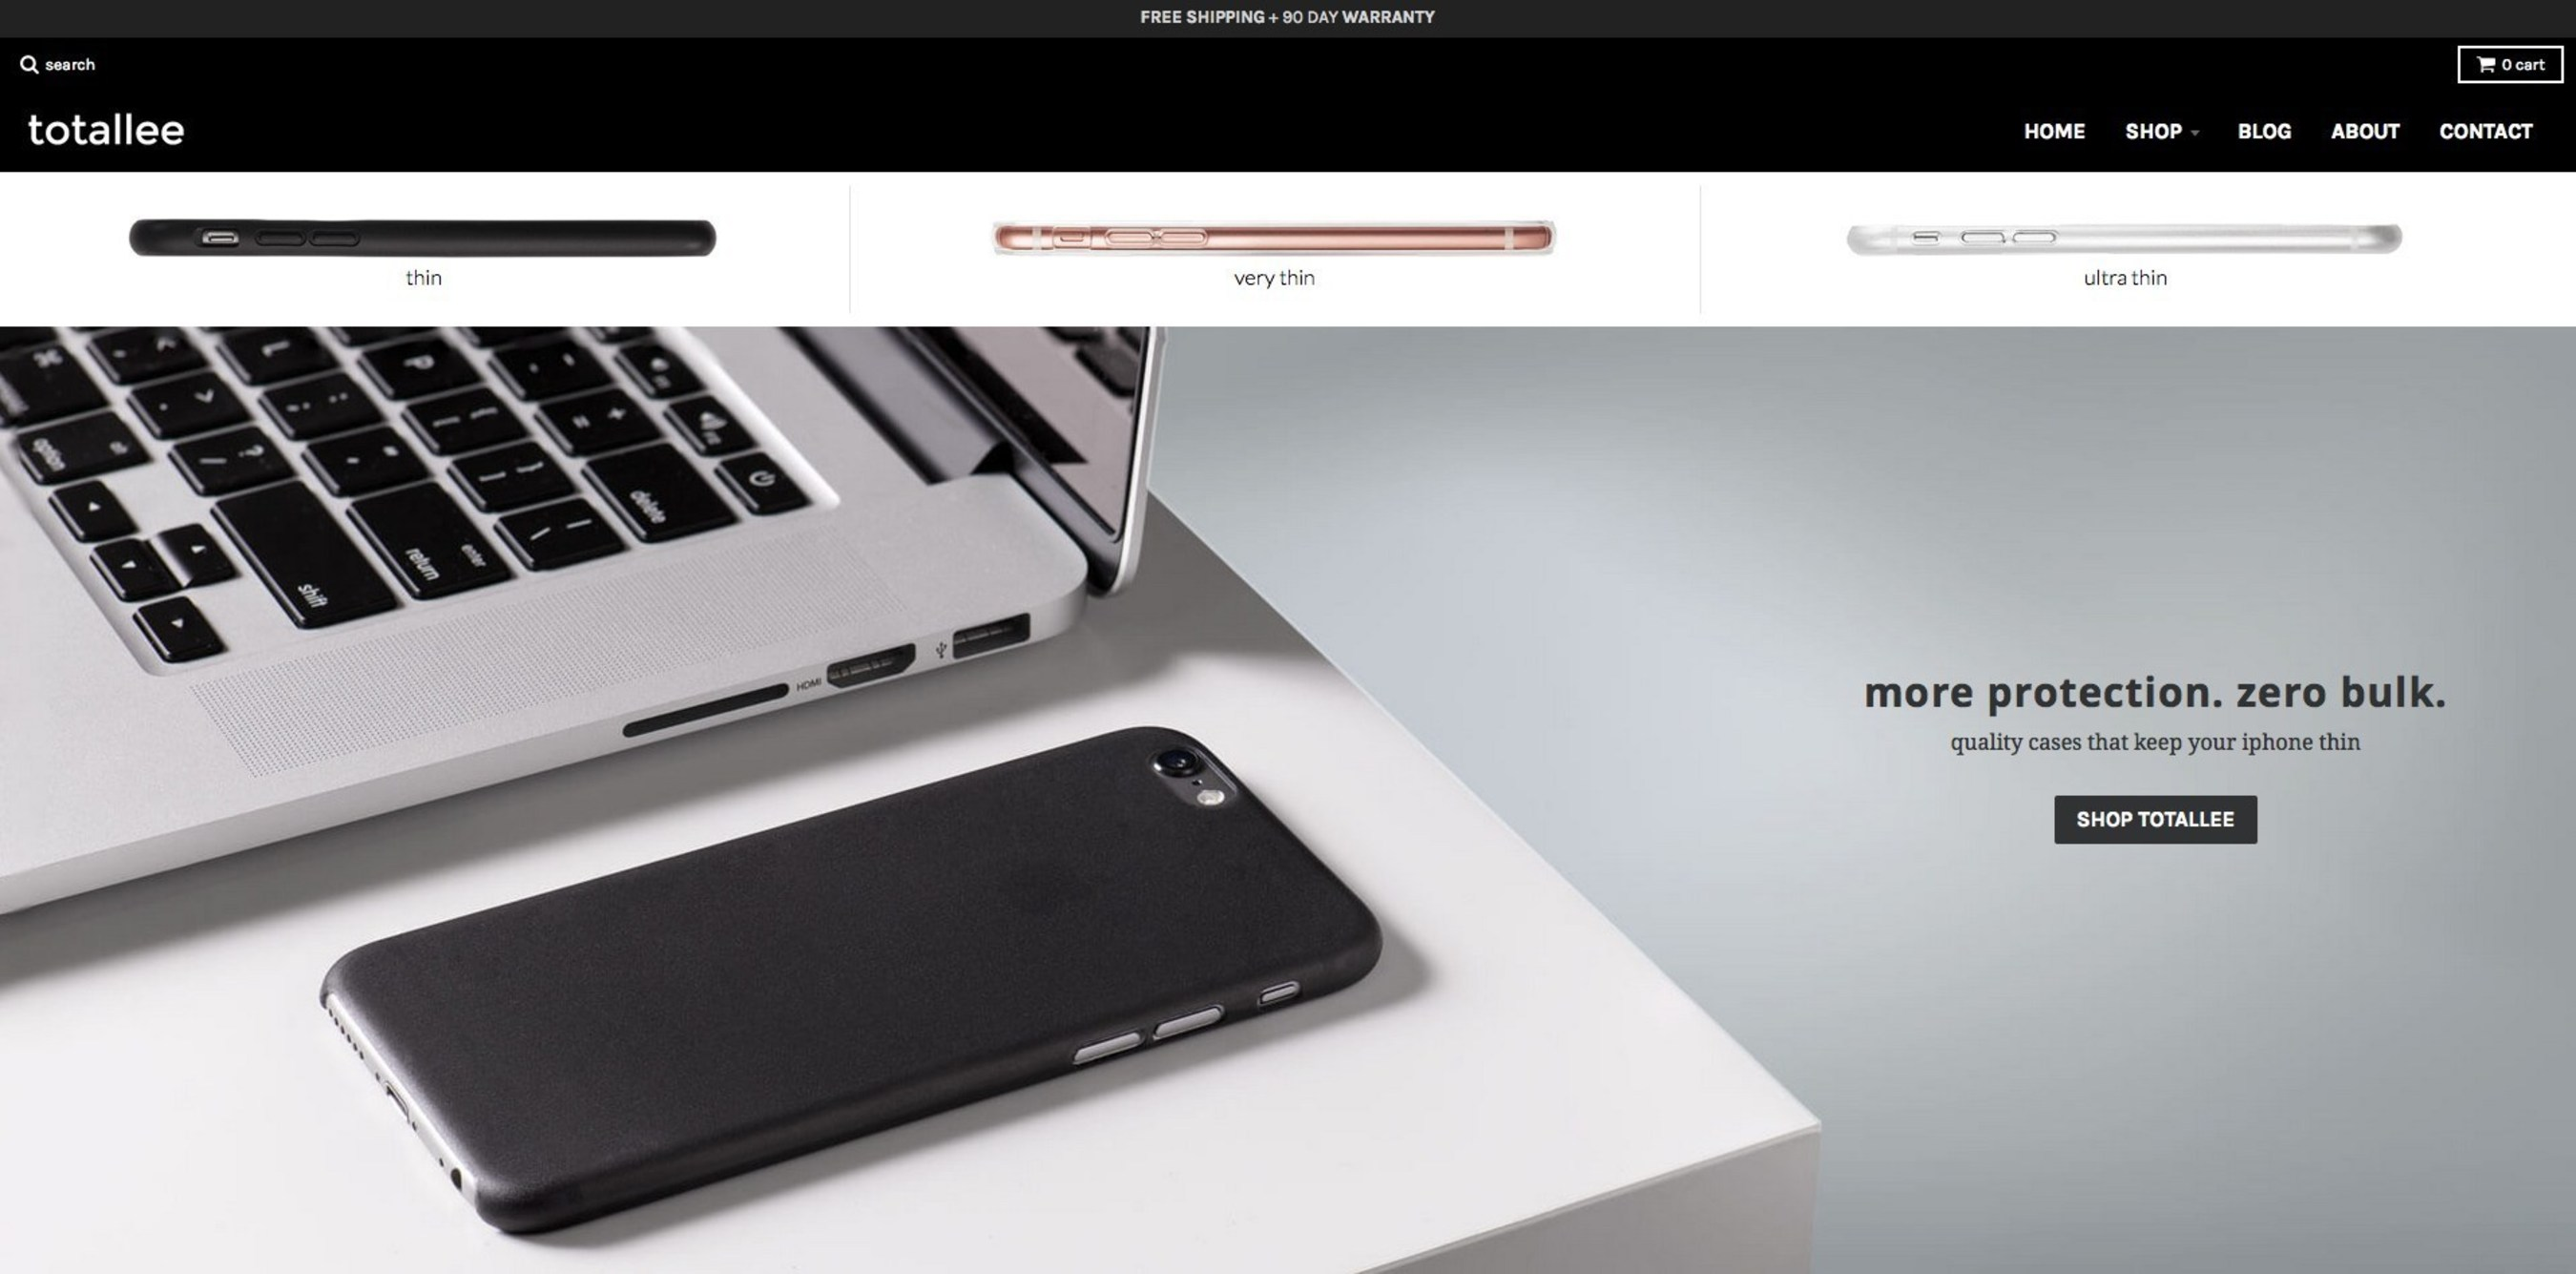 Totallee, the Incredibly Thin iPhone Cases Provider, Launches Its Redesigned and Minimalistic Website